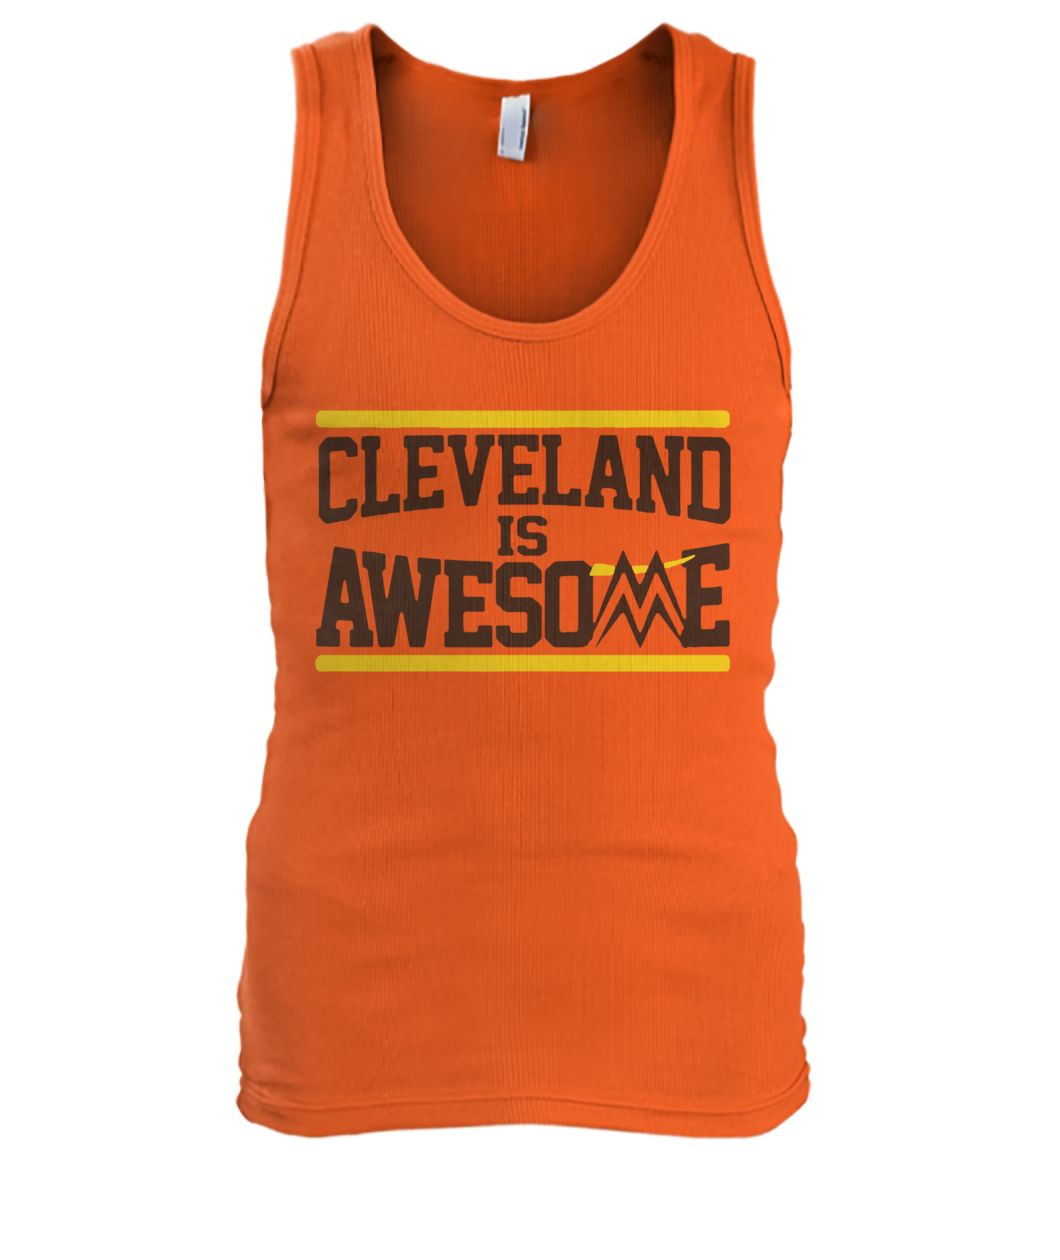 Cleveland is awesome miz men's tank top